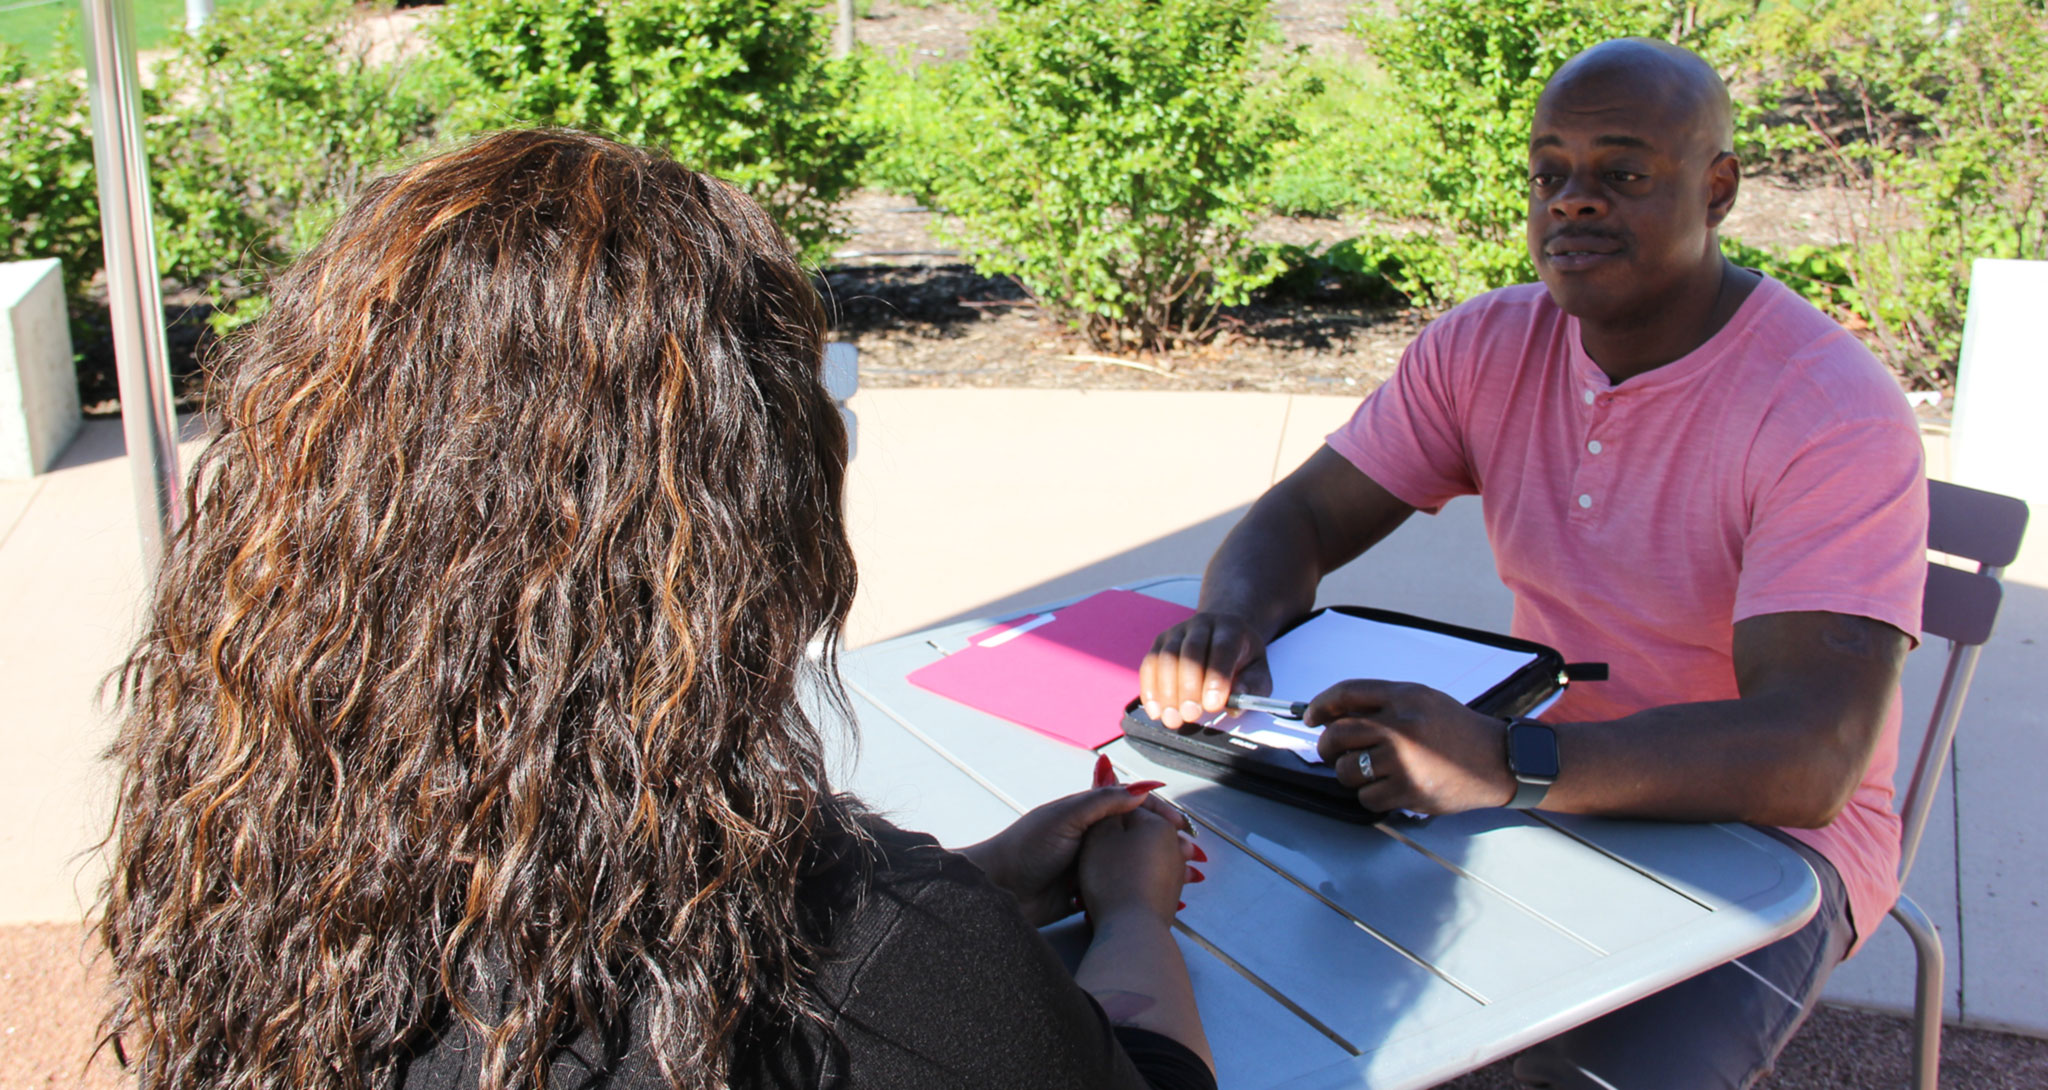 Tyrone Patterson, a psychiatric social worker and mental health survivor, meeting with a client in the park.